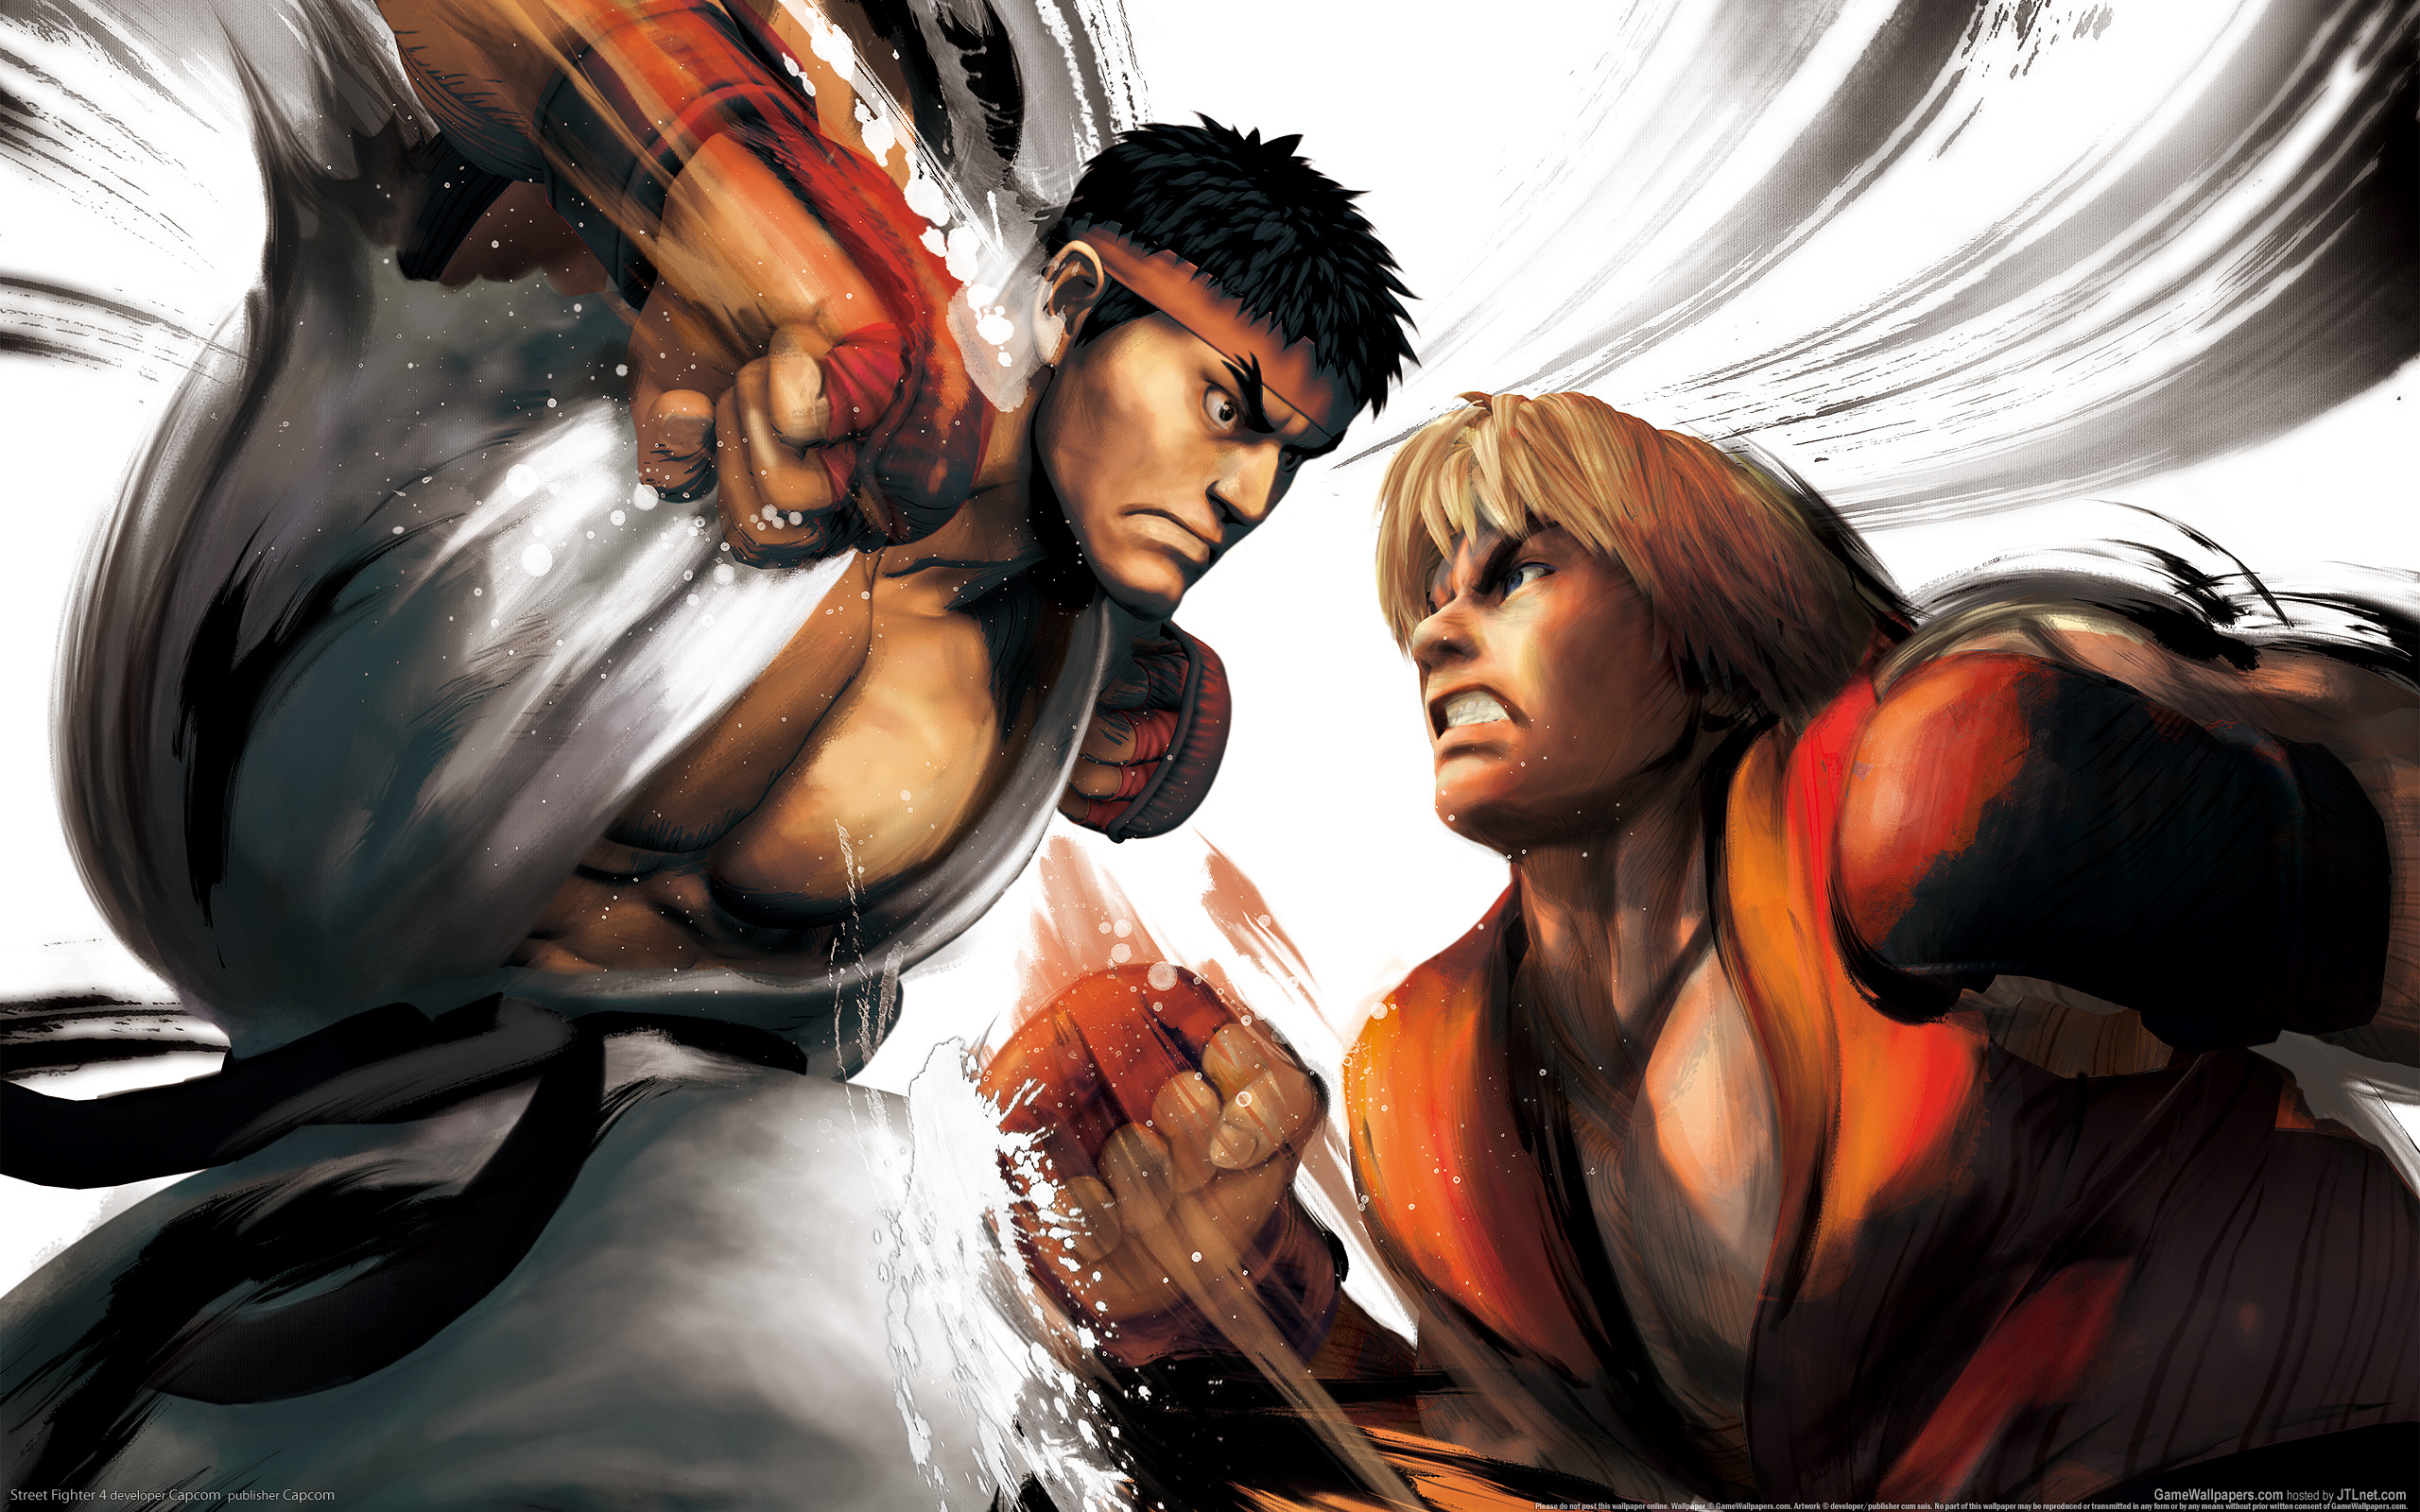 wallpaper street fighter 4 17 2560x1600